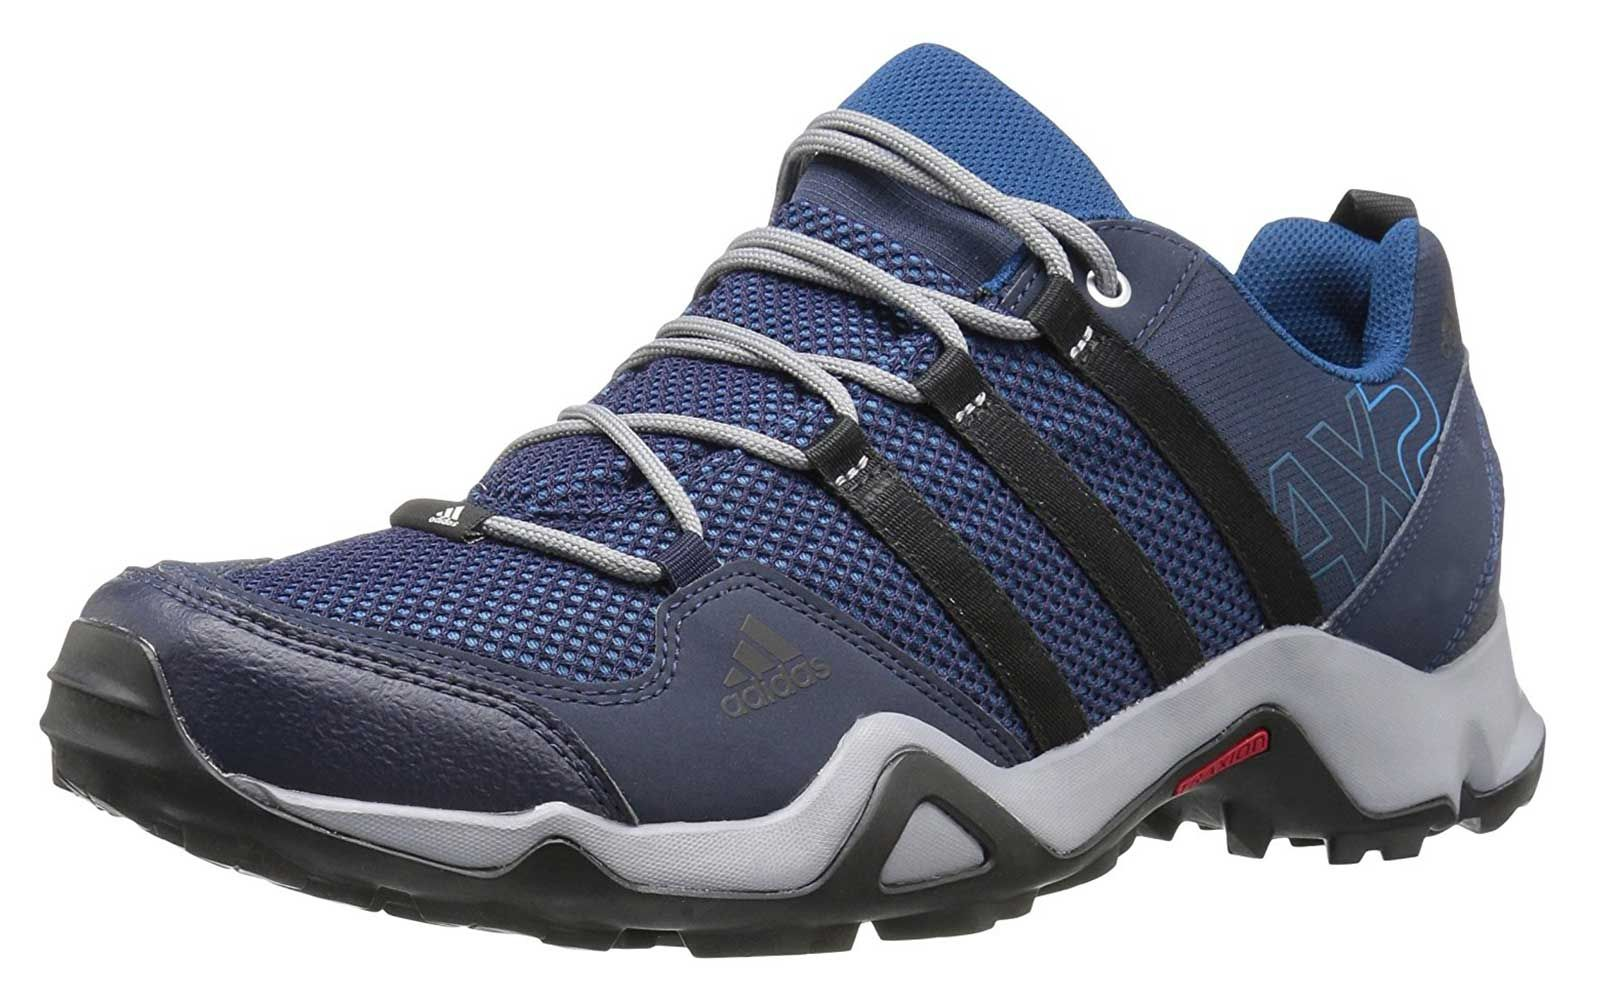 139301e9ceebb The 10 Best Hiking Shoes on Amazon | if wishes could be worn | Best ...